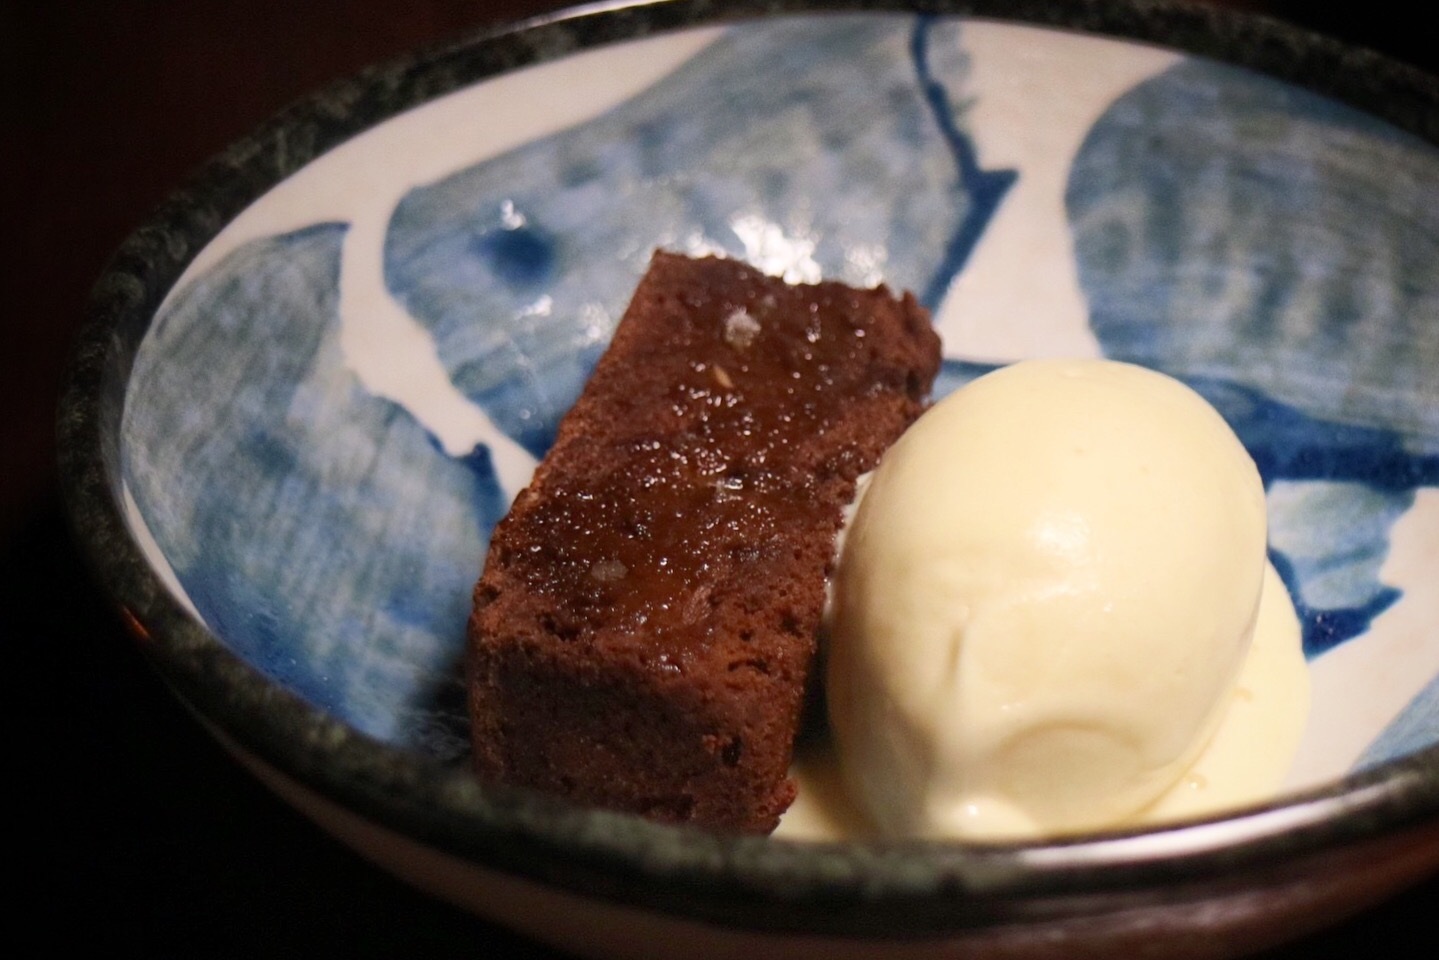 Flourless chocolate cake and miso caramel ice cream.